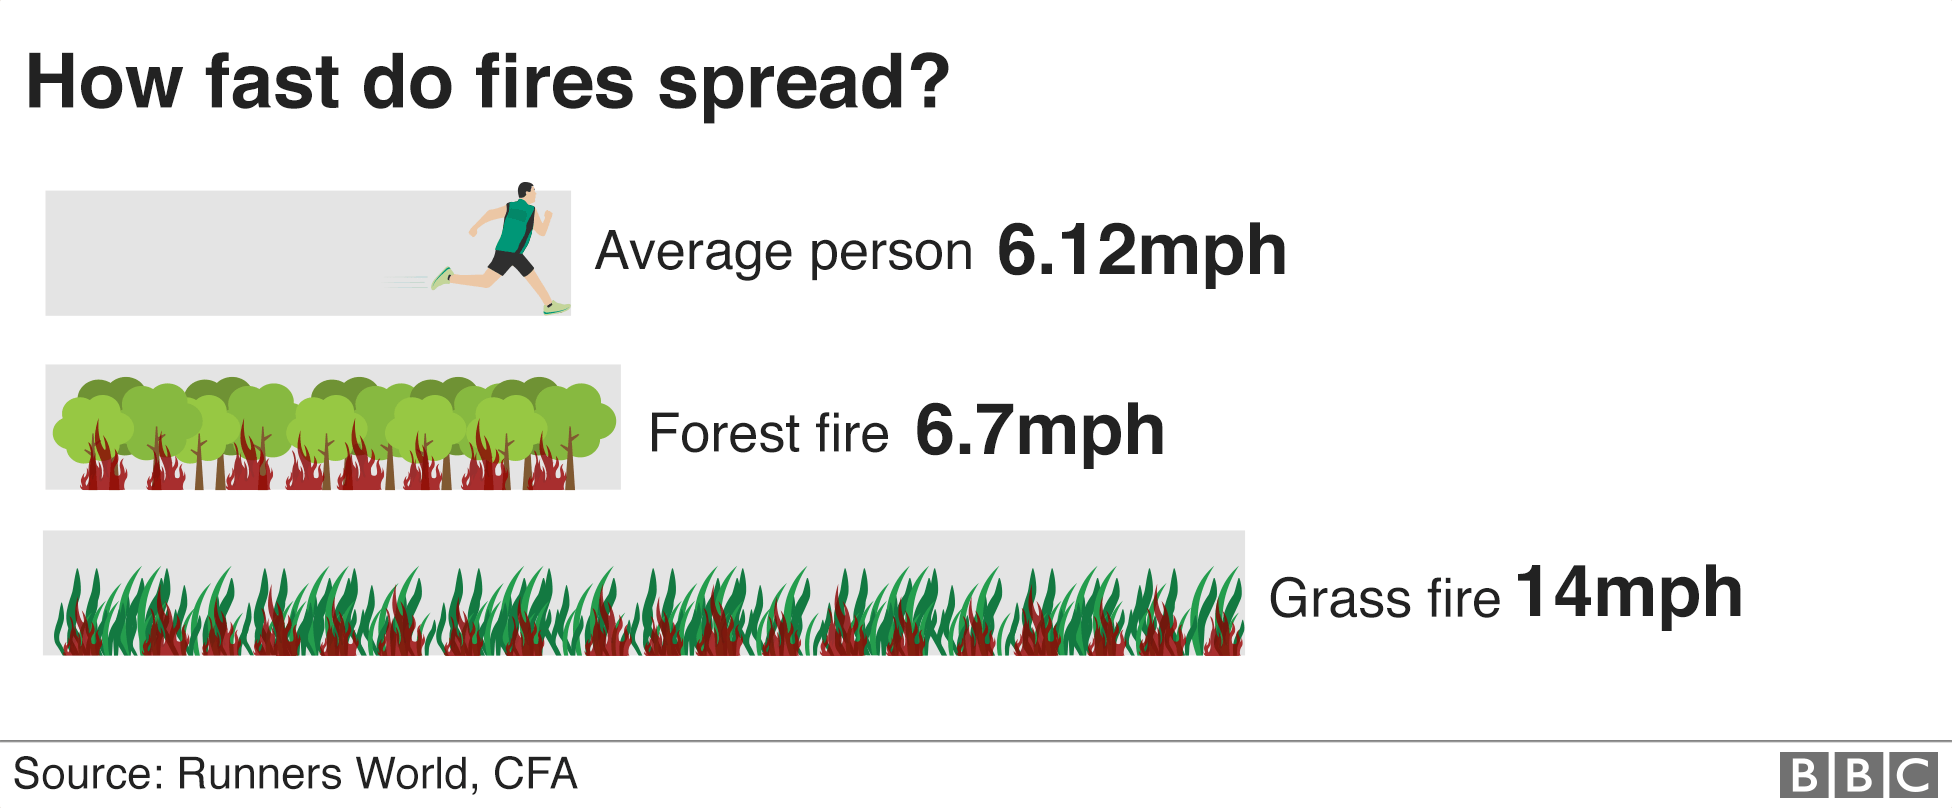 Graphic: How fast do fires spread?